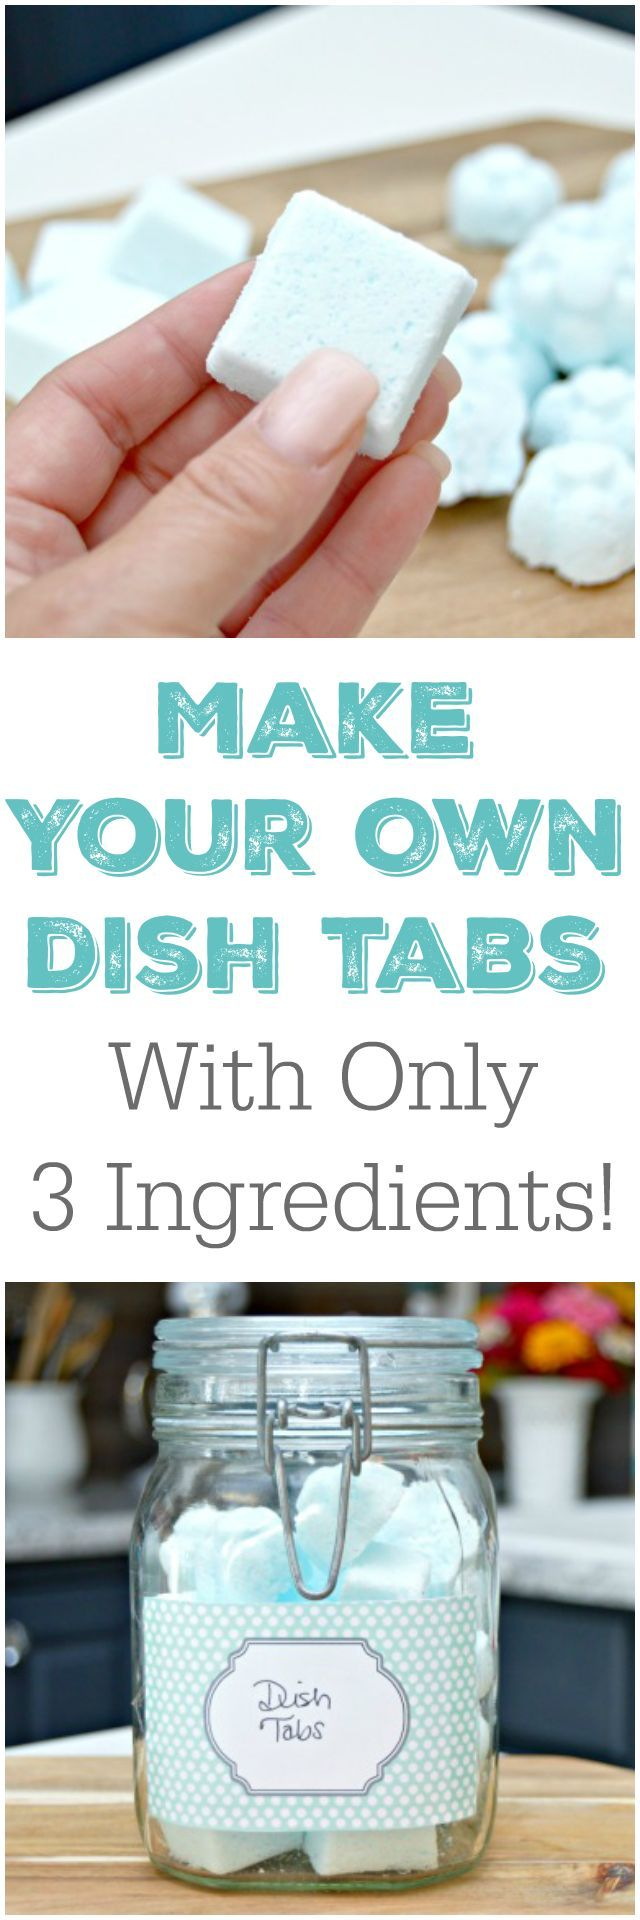 3 Ingredient Homemade Dish Tablets Recipe – Make easy and inexpensive dish tabs in